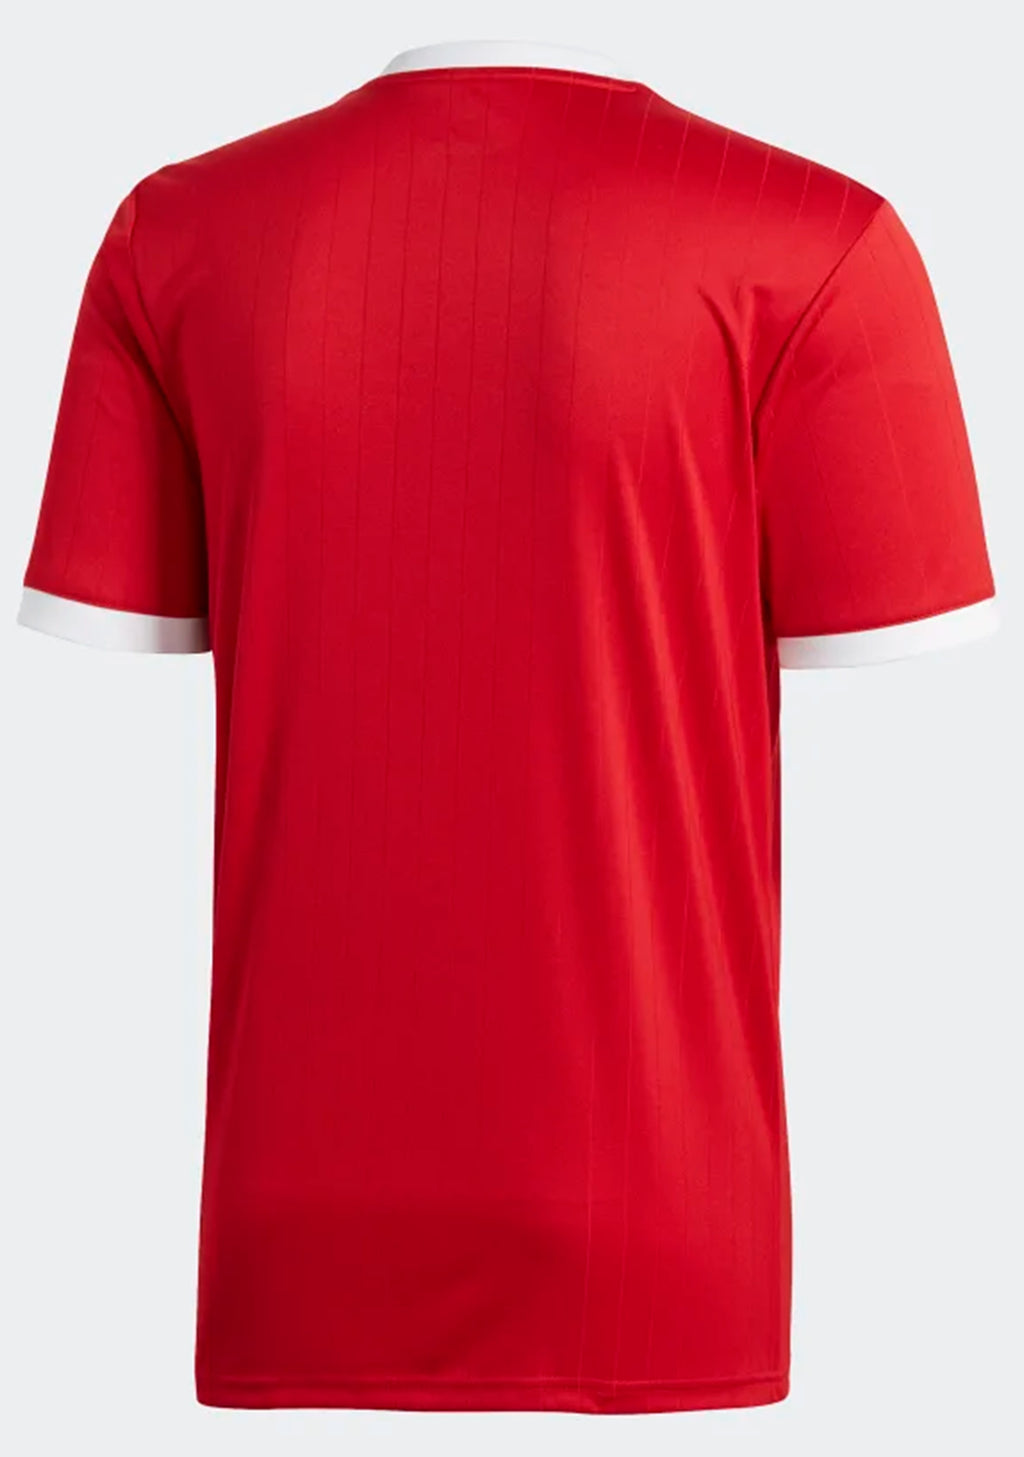 ADIDAS MENS TABELA 18 JERSEY <BR> CE893